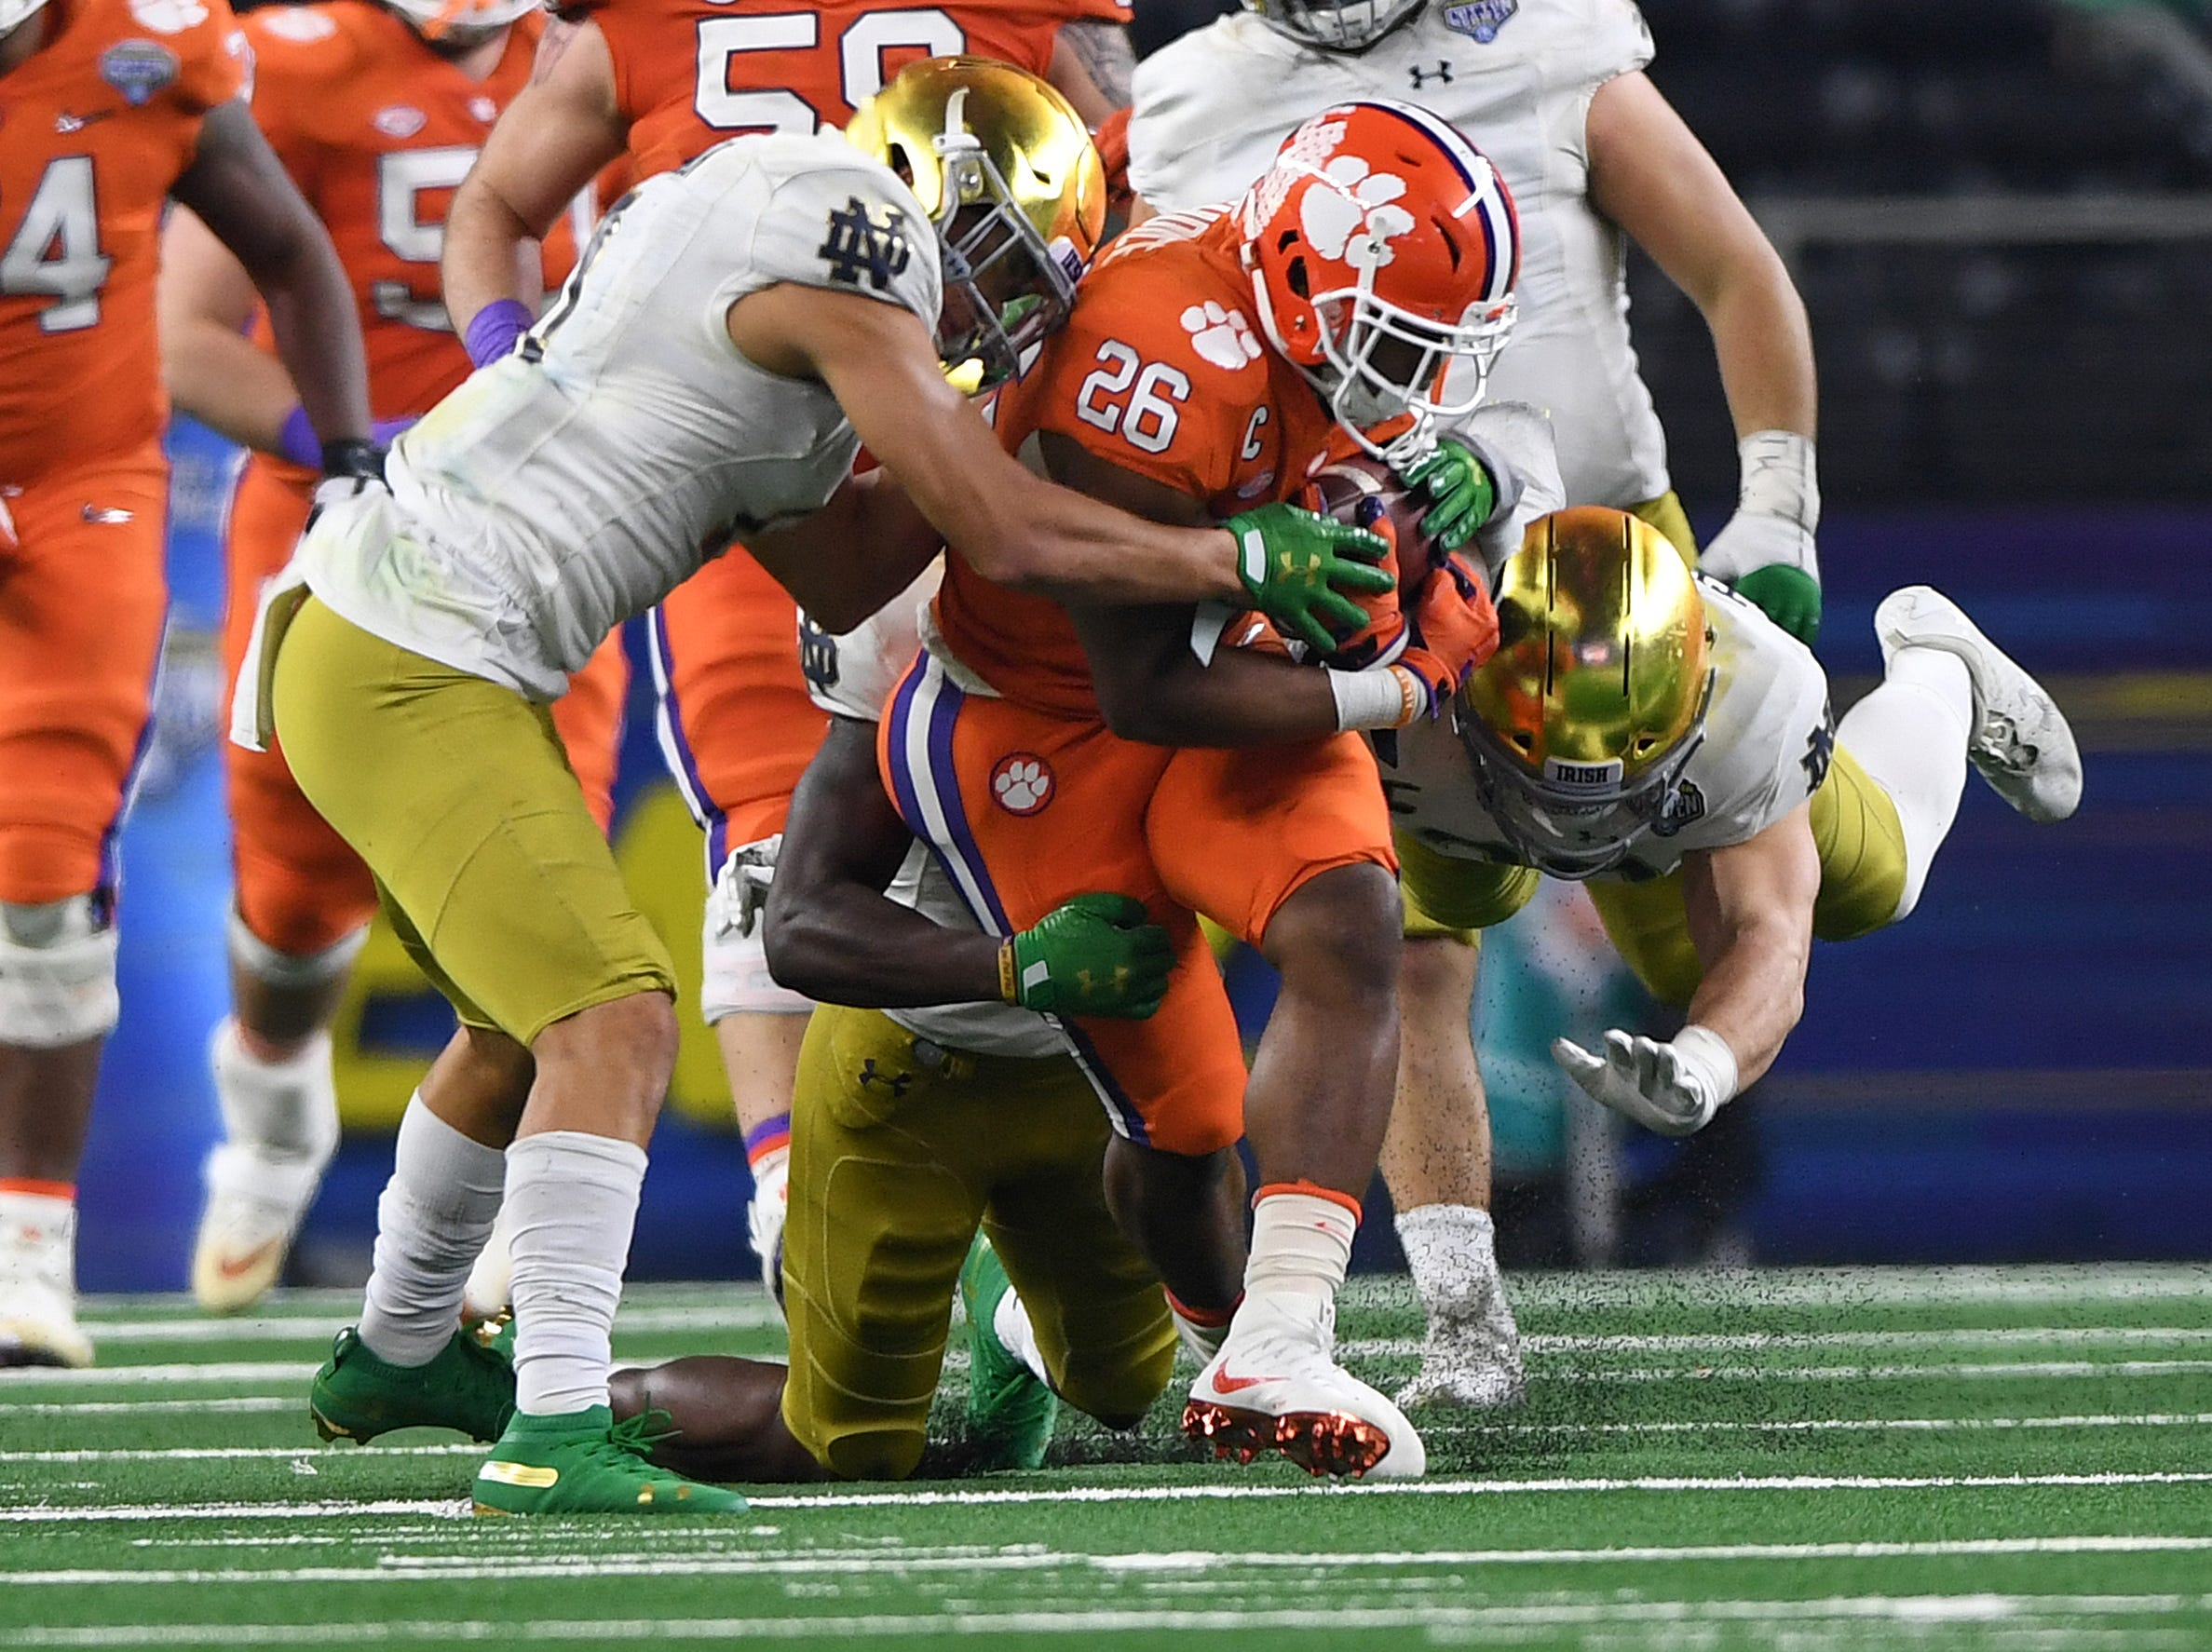 Clemson running back Adam Choice (26) carries against Notre Dame during the 4th quarter of the Goodyear Cotton Bowl at AT&T stadium in Arlington, TX Saturday, December 29, 2018.